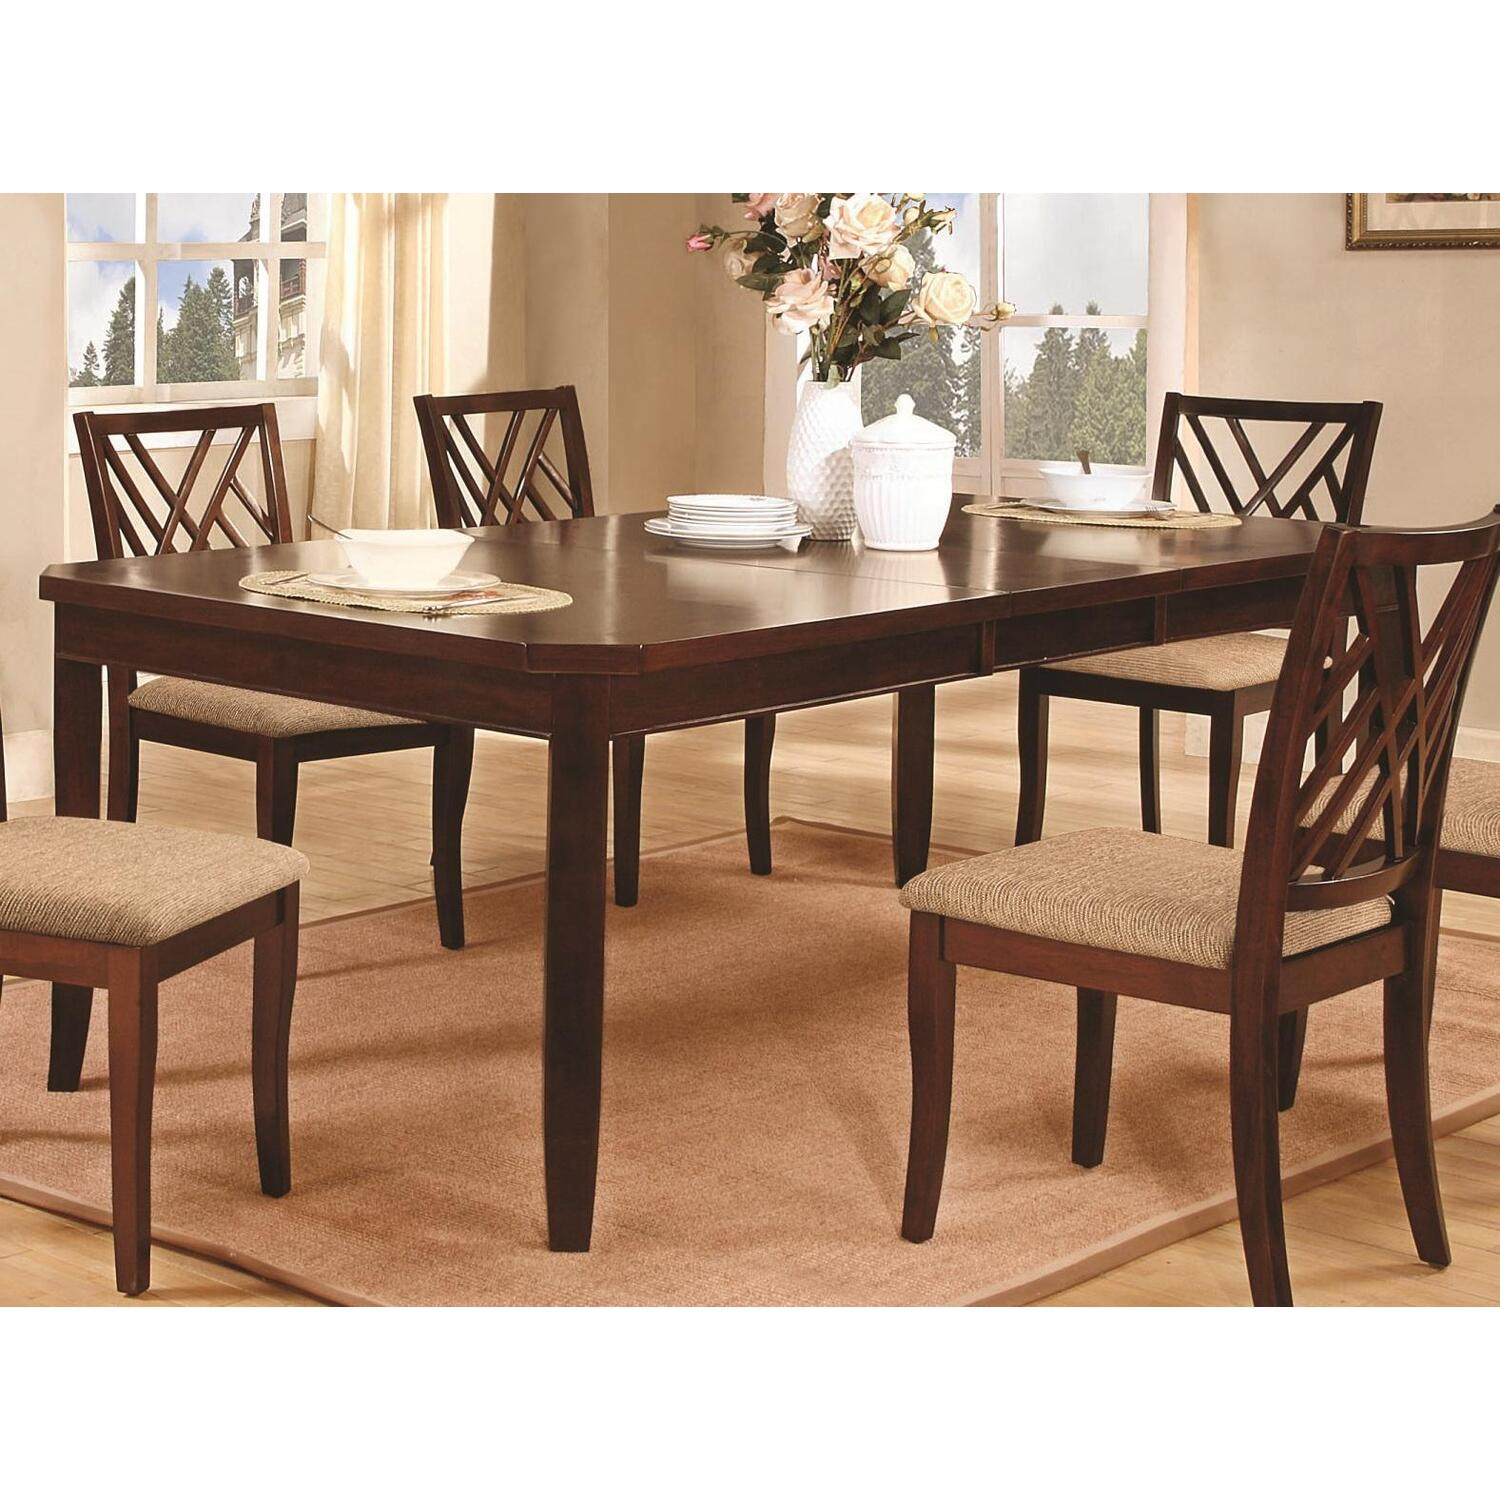 Hollywood Home Blooming Grove Dining Table By OJ Commerce WH 103031